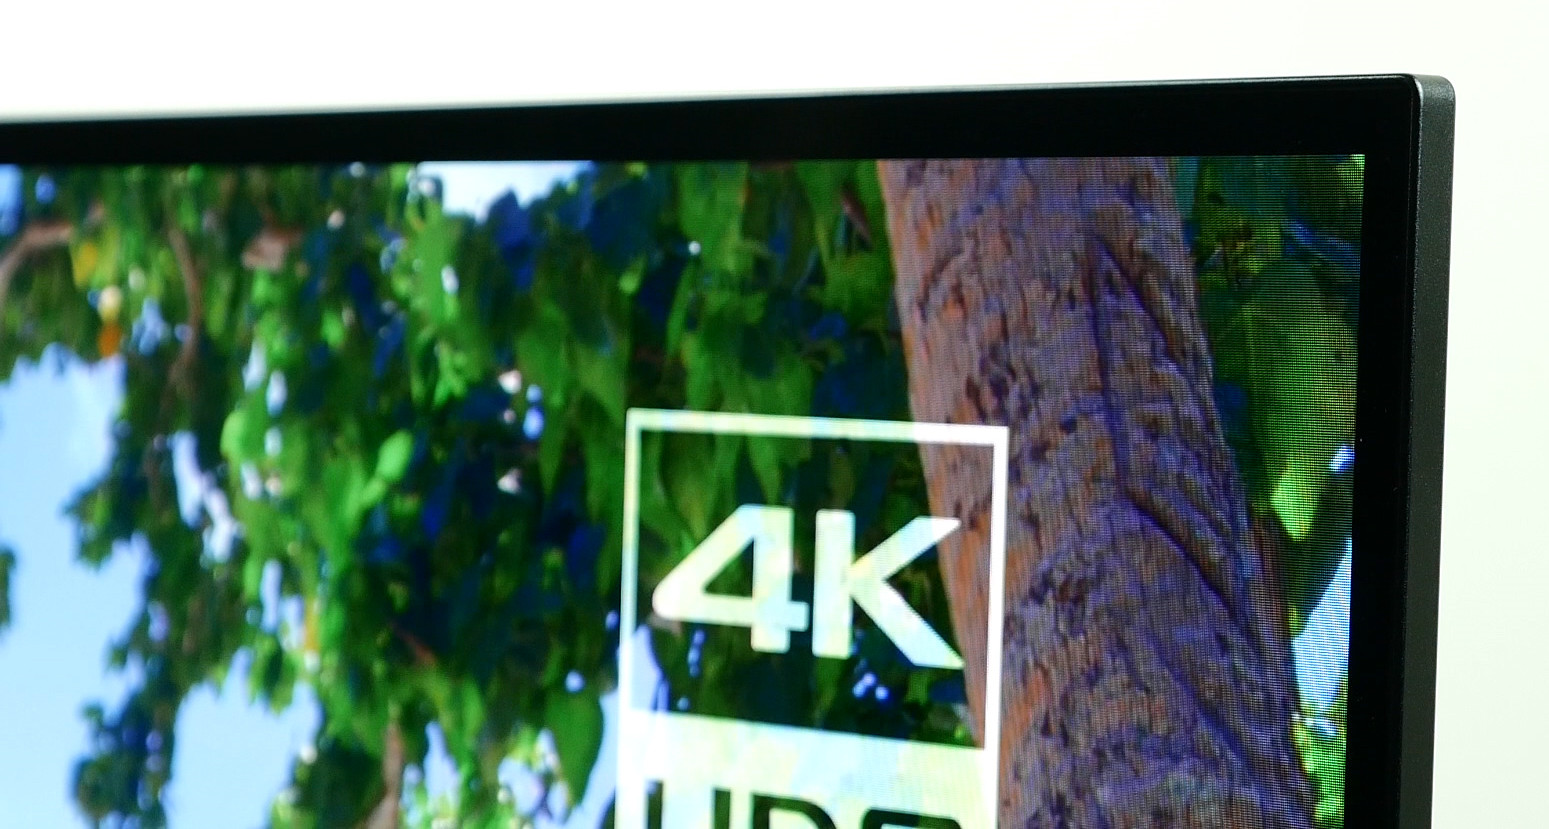 The company s designers have even taken the bold step of shrinking the  normally prominent Sony logo to ... d644401058